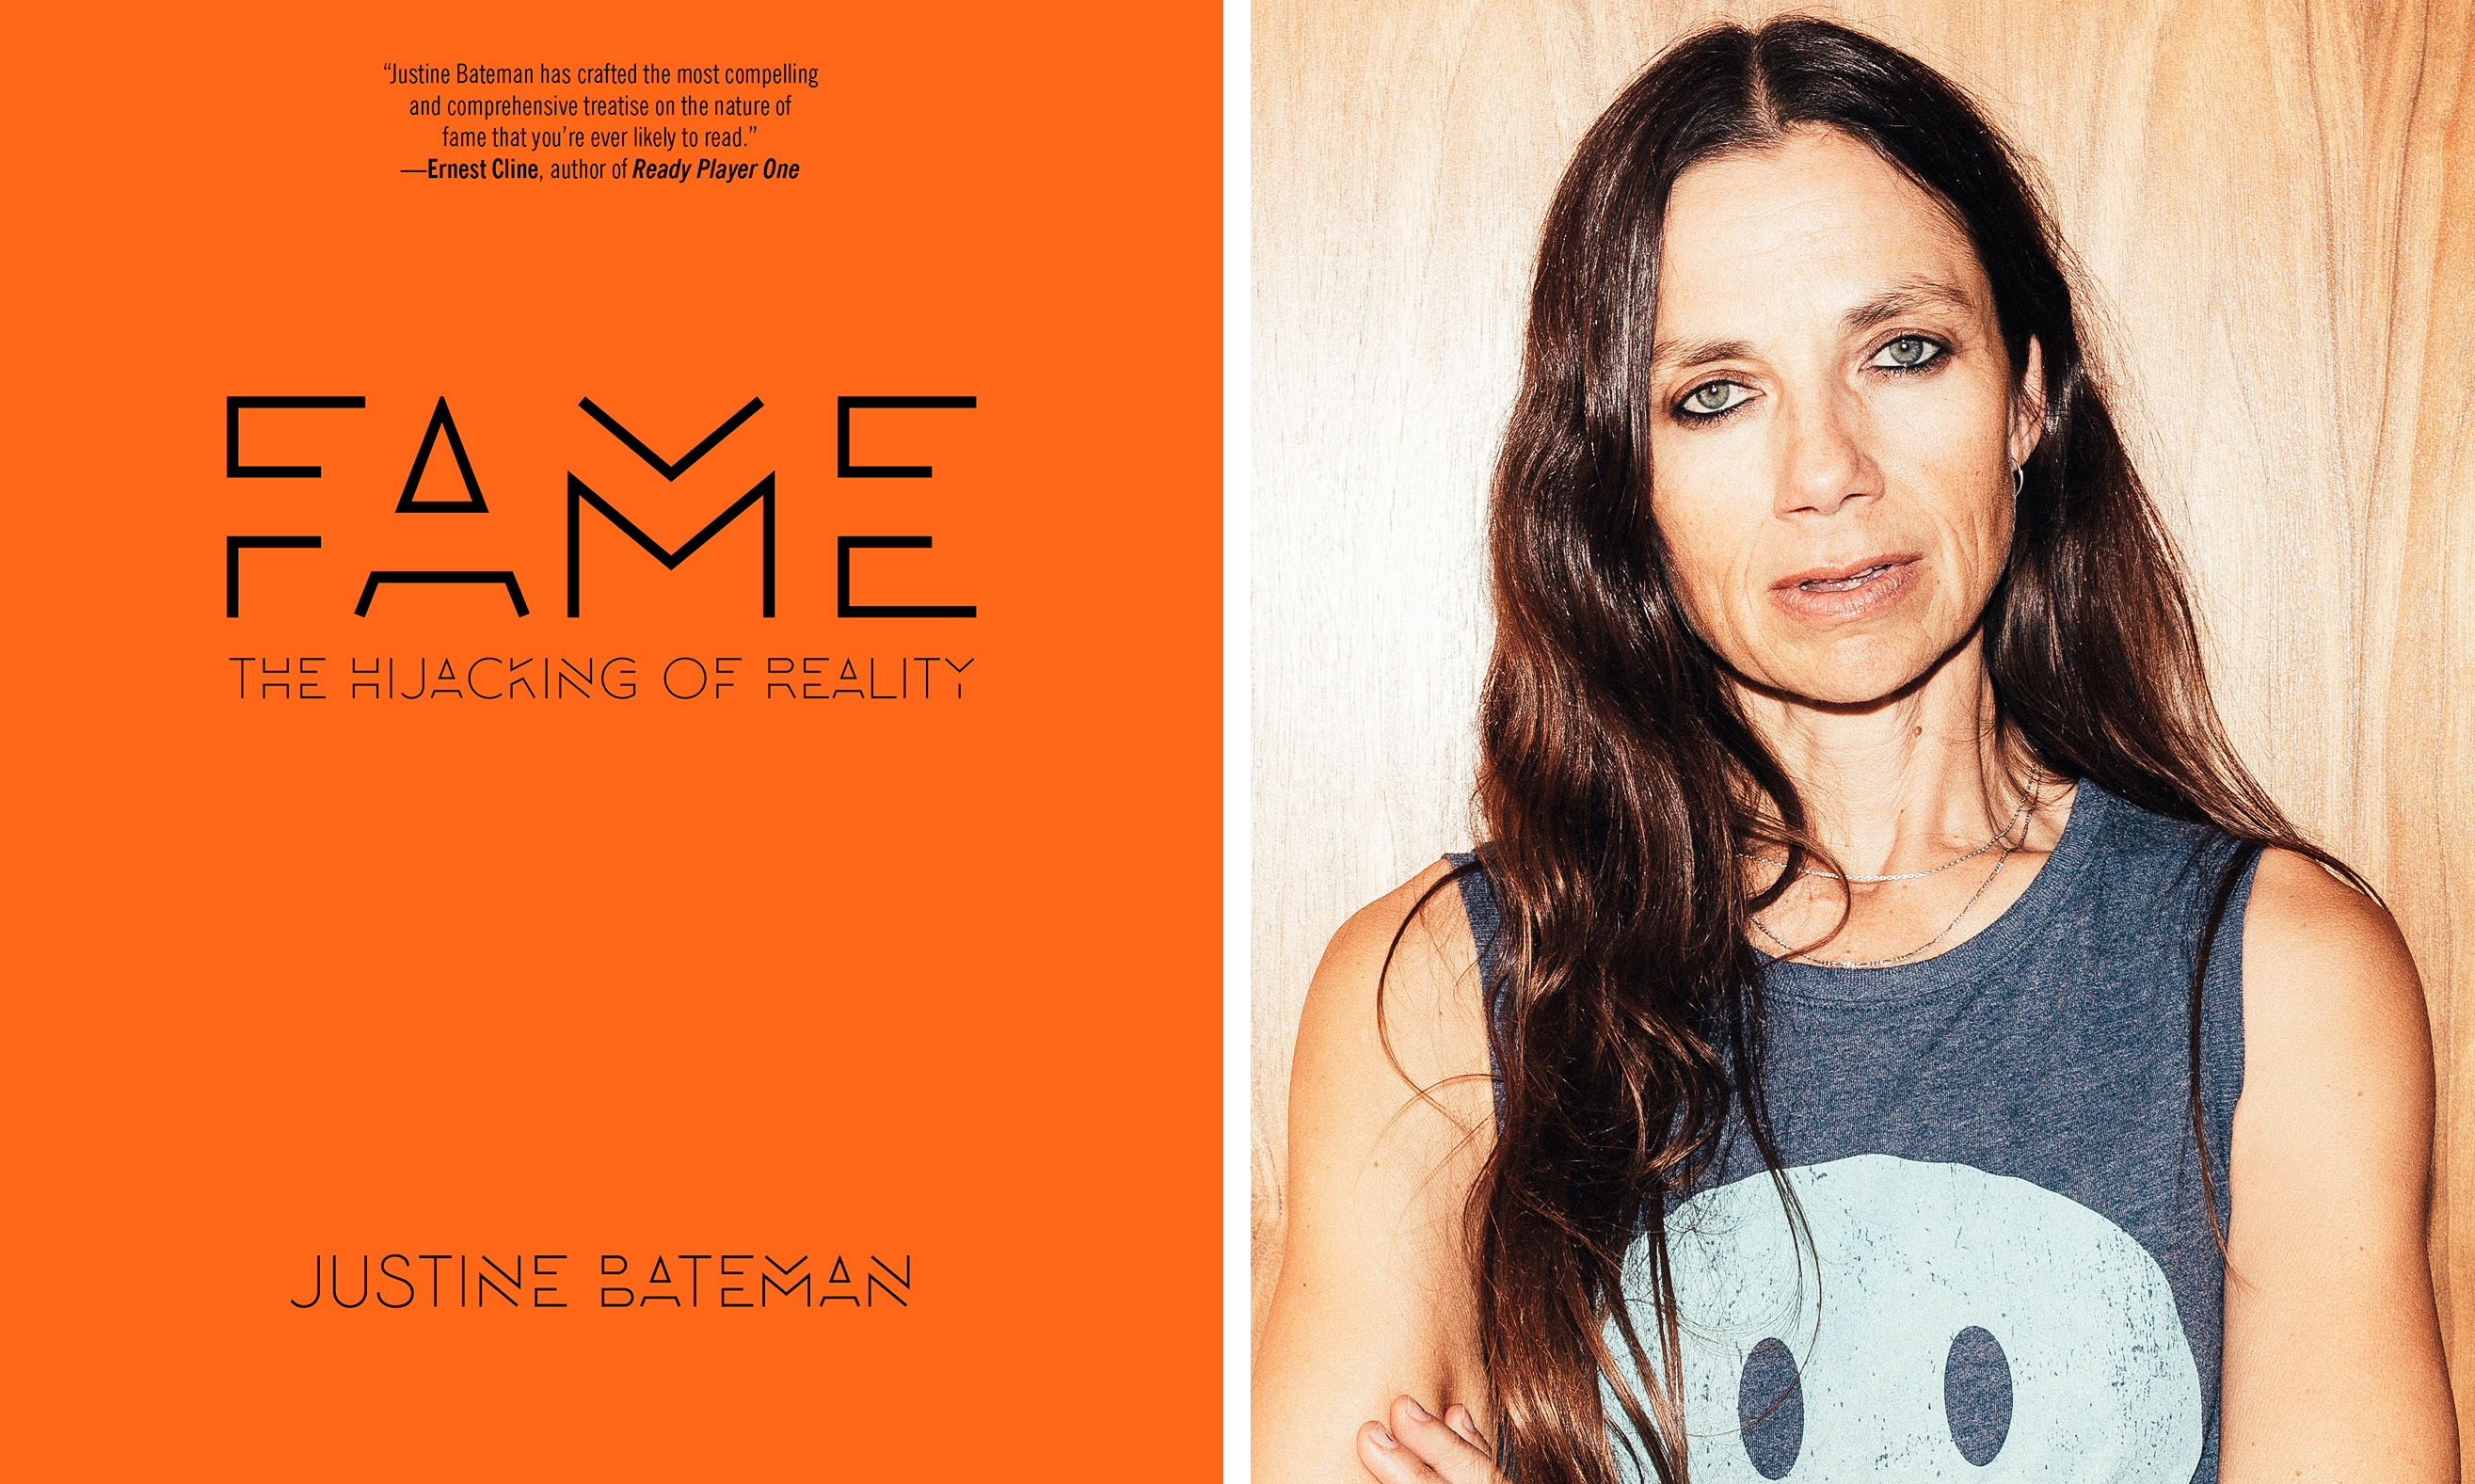 Justine Bateman is so happy to not be famous